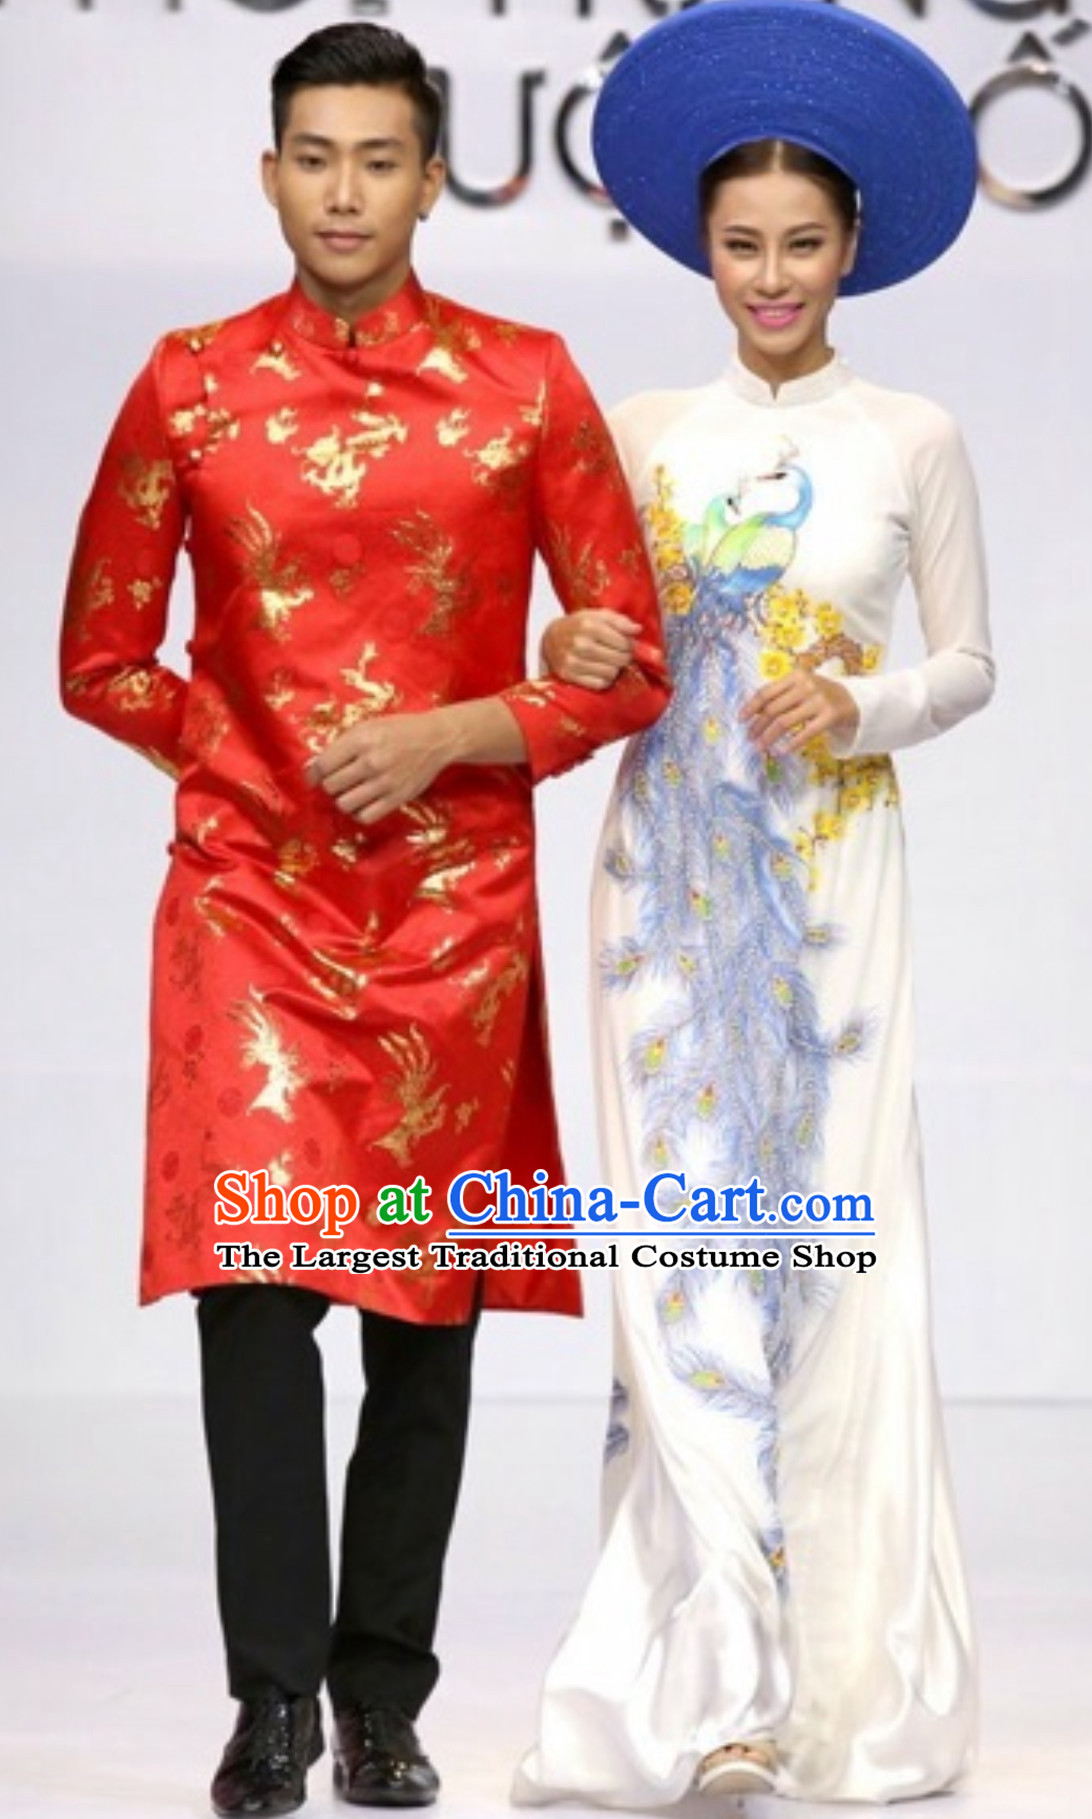 Top Traditional Vietnam Wedding Dresses Complete Set for Bride and Bridegroom